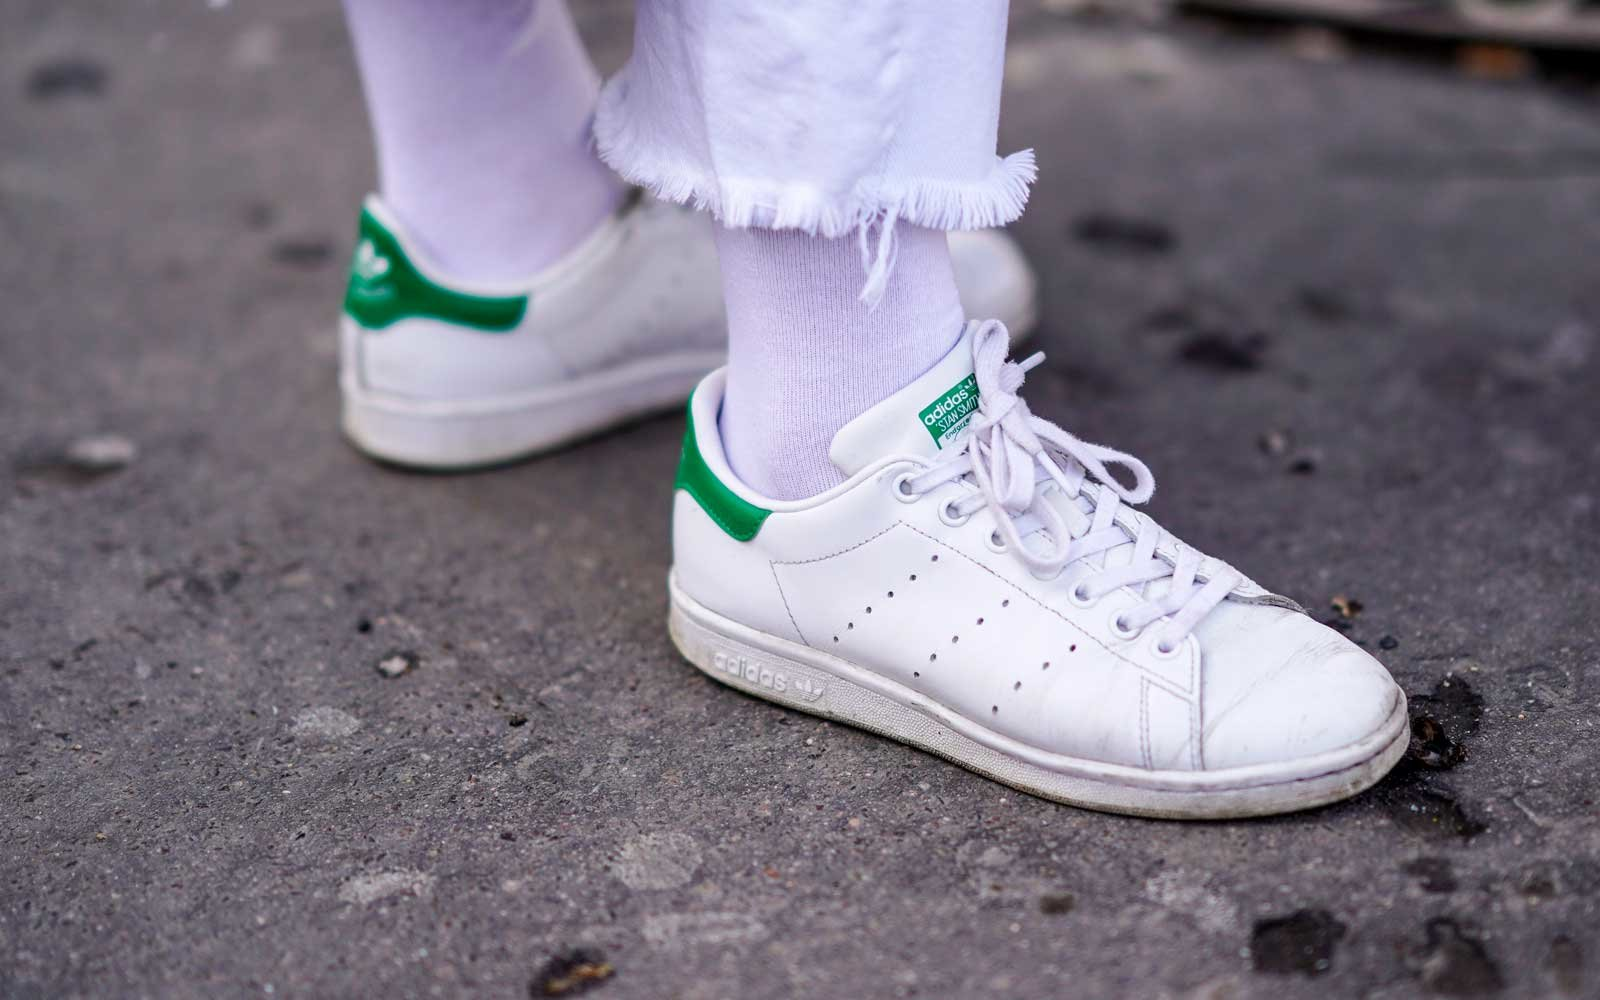 837301c089c The White Sneaker Is the Perfect Travel Shoe — Here Are the Best Pairs for  Women